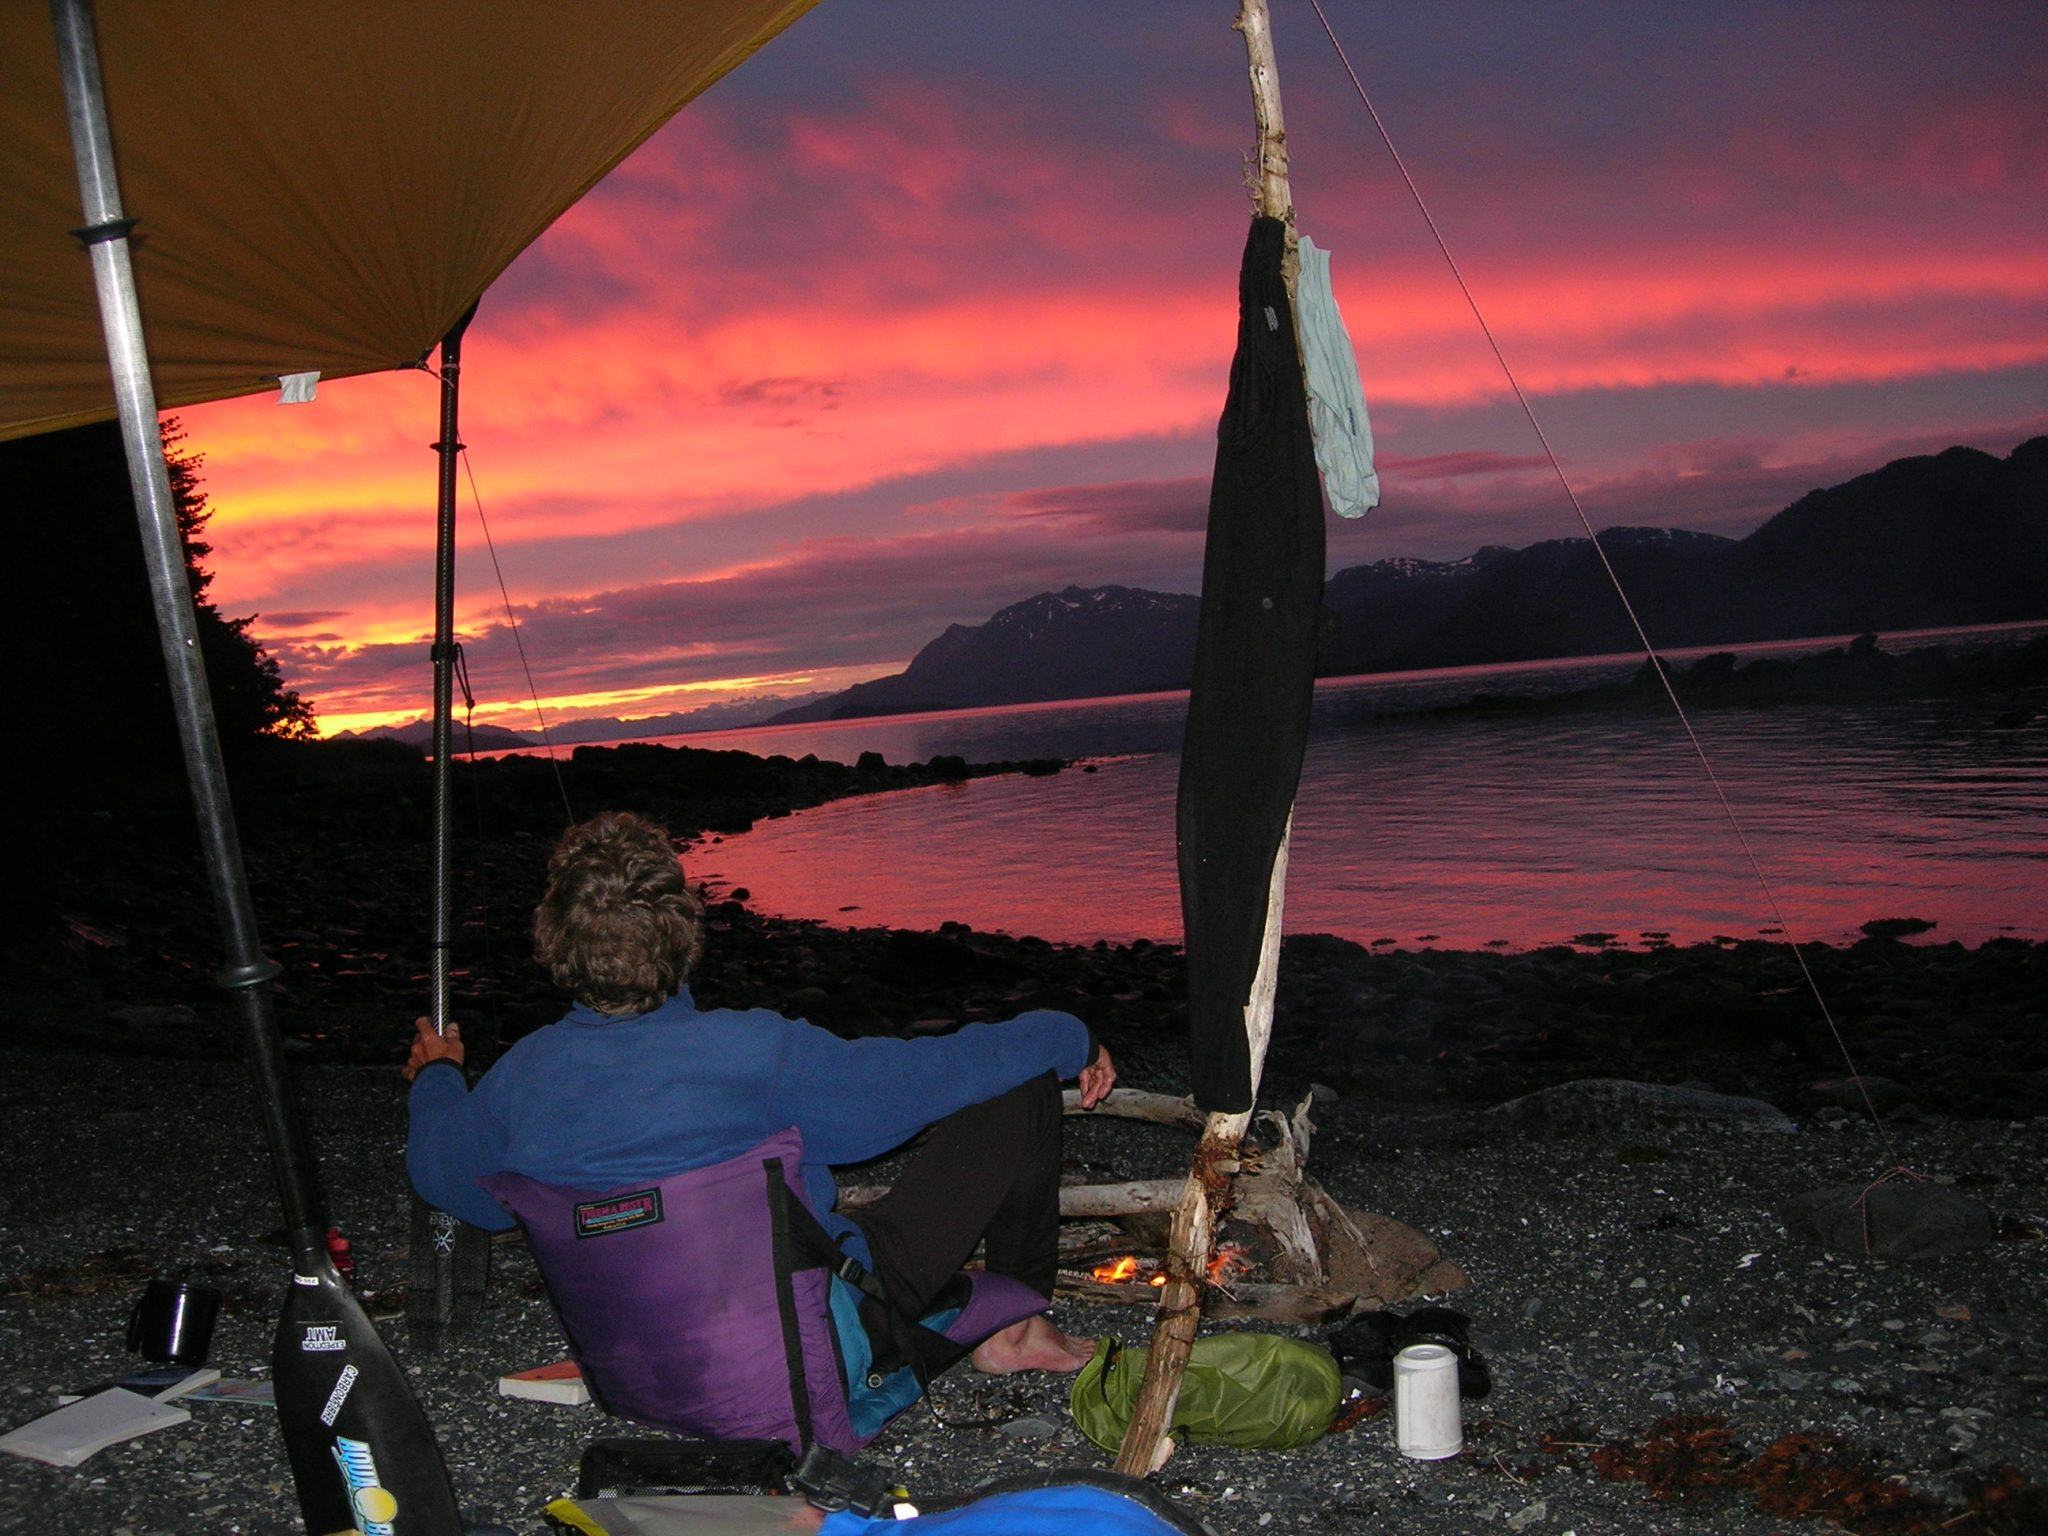 Sea Kayaking: Top 7 Gear Items for Sleeping & Resting